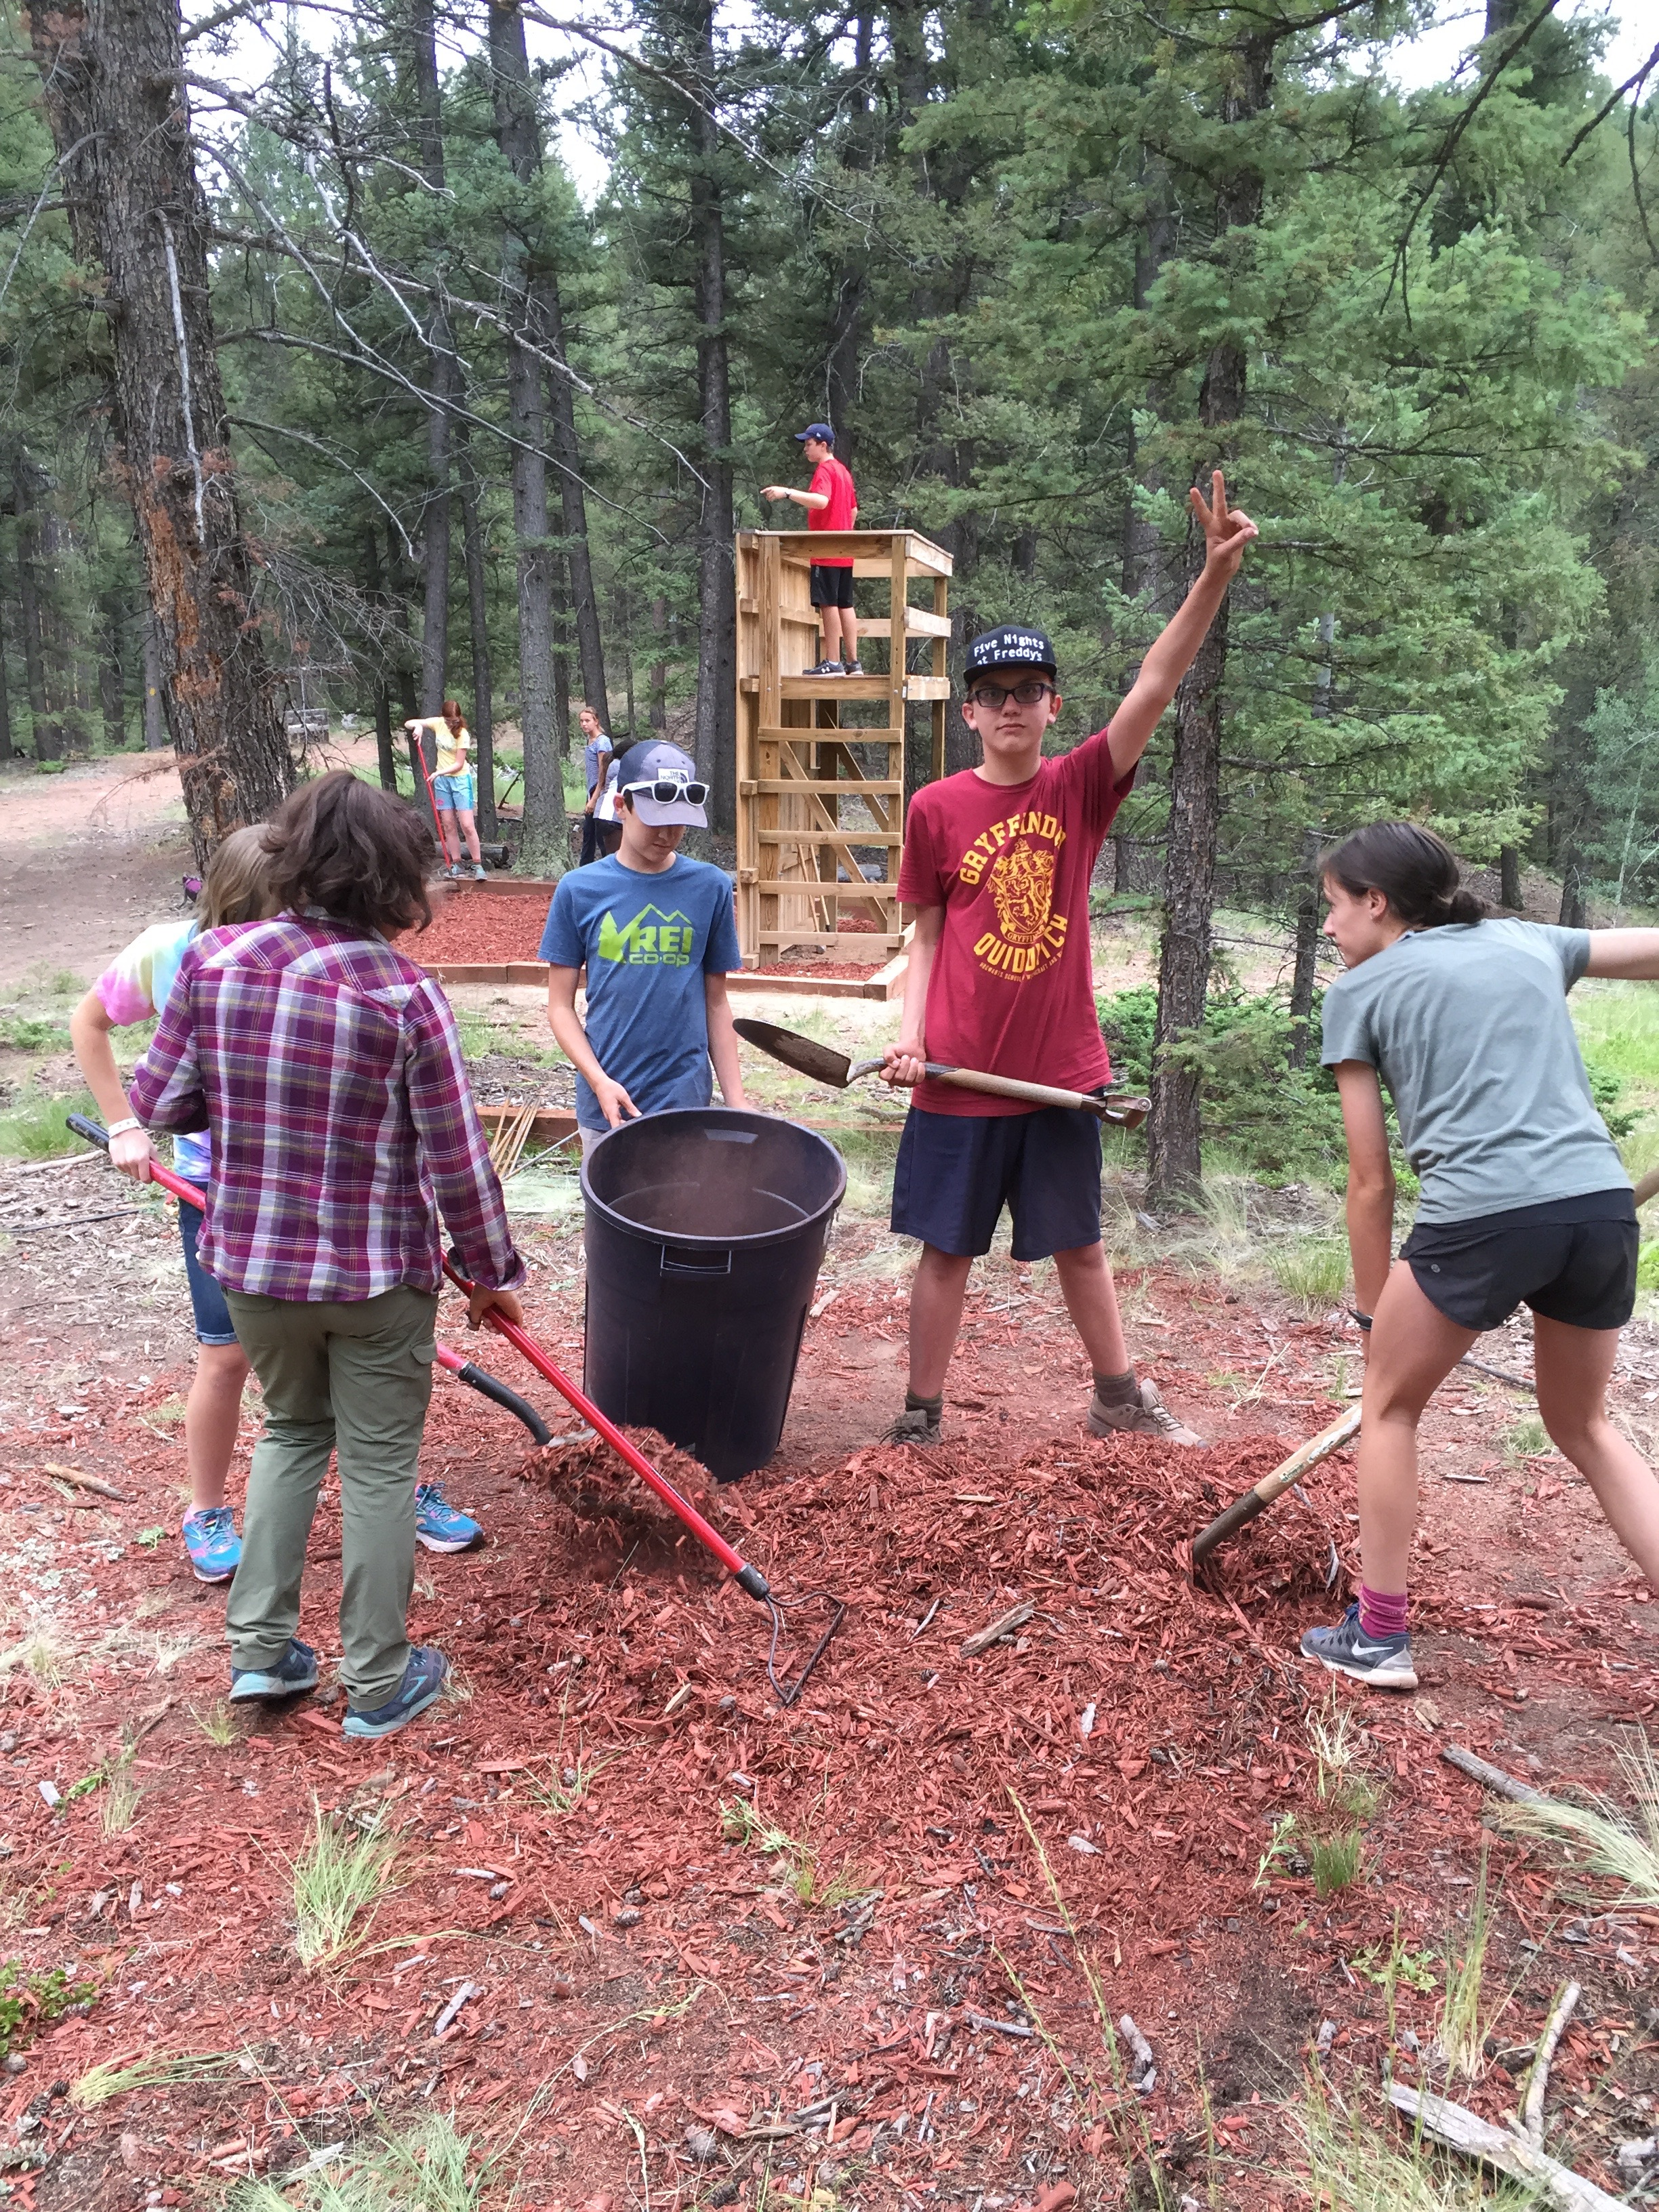 Youth from the Colorado Youth Leadership Institute do a service project together